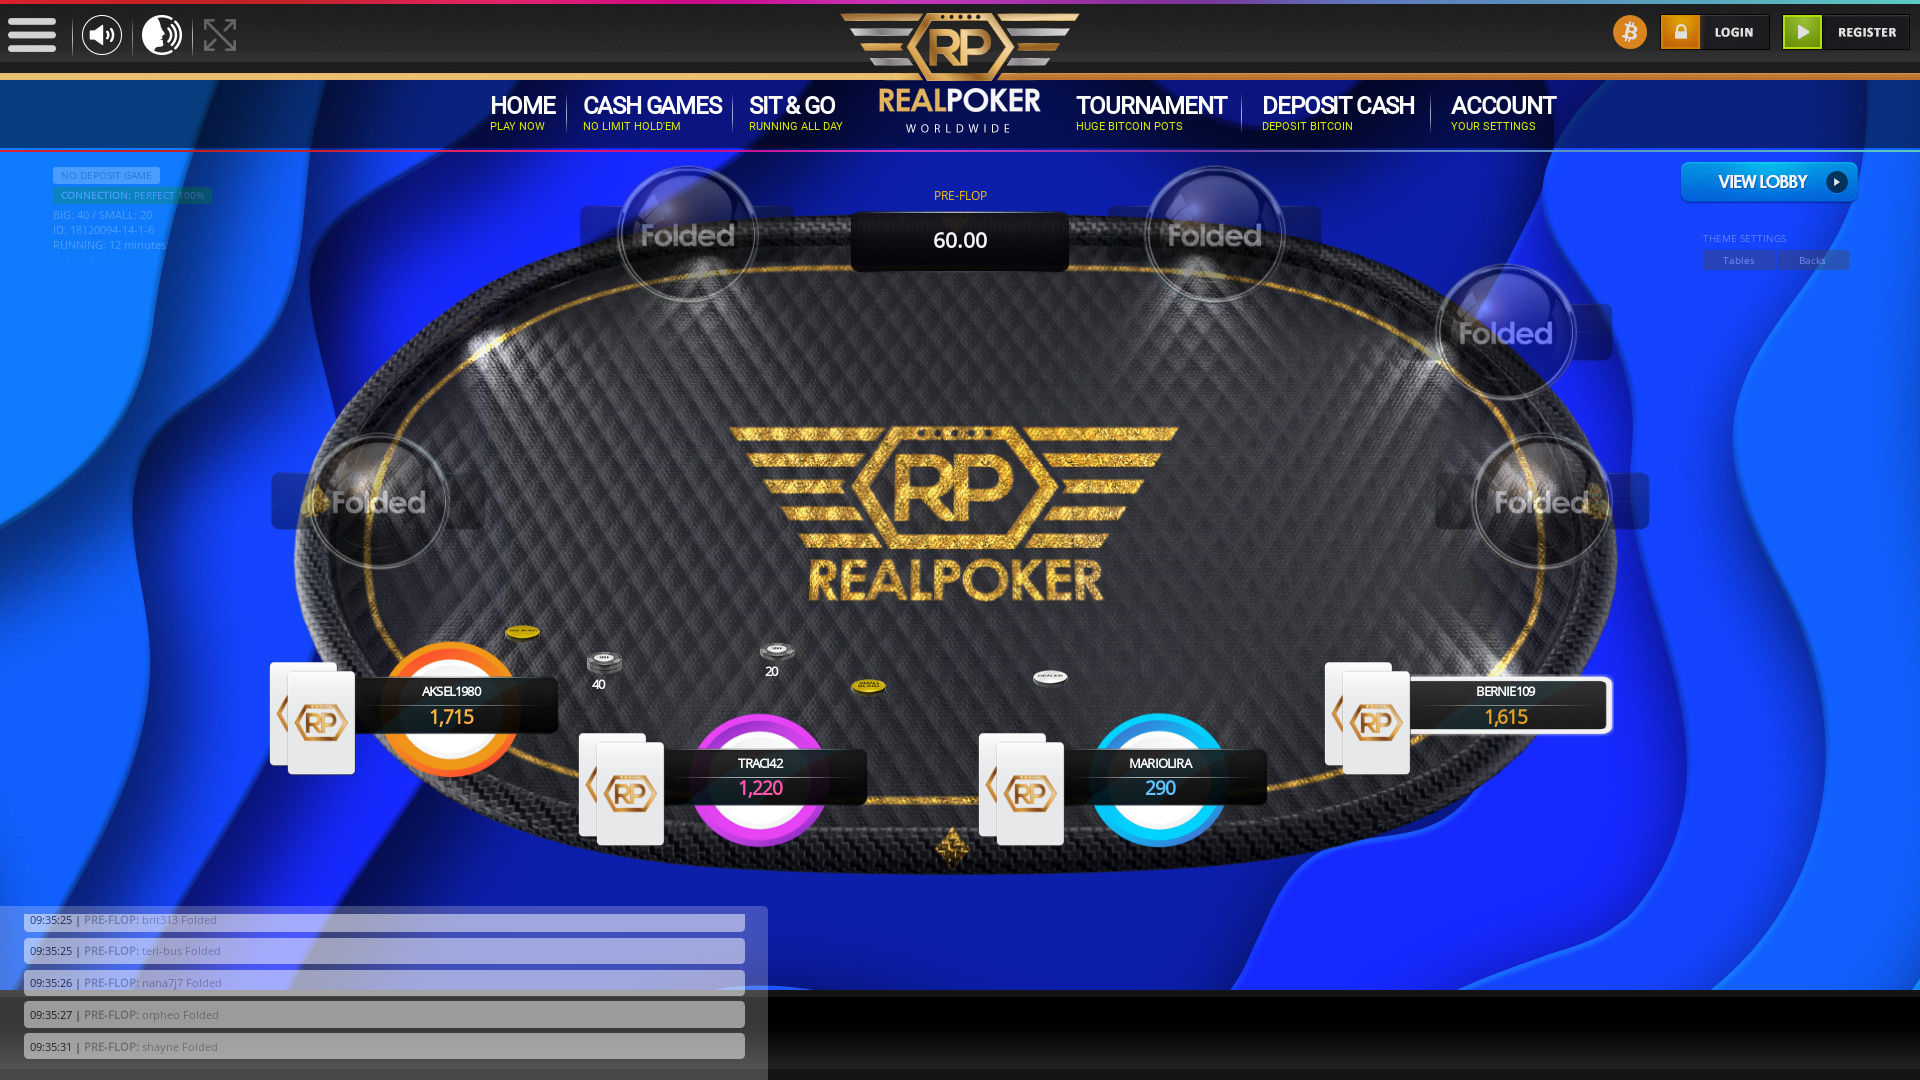 Macau Casino Bitcoin Poker on the 13th July